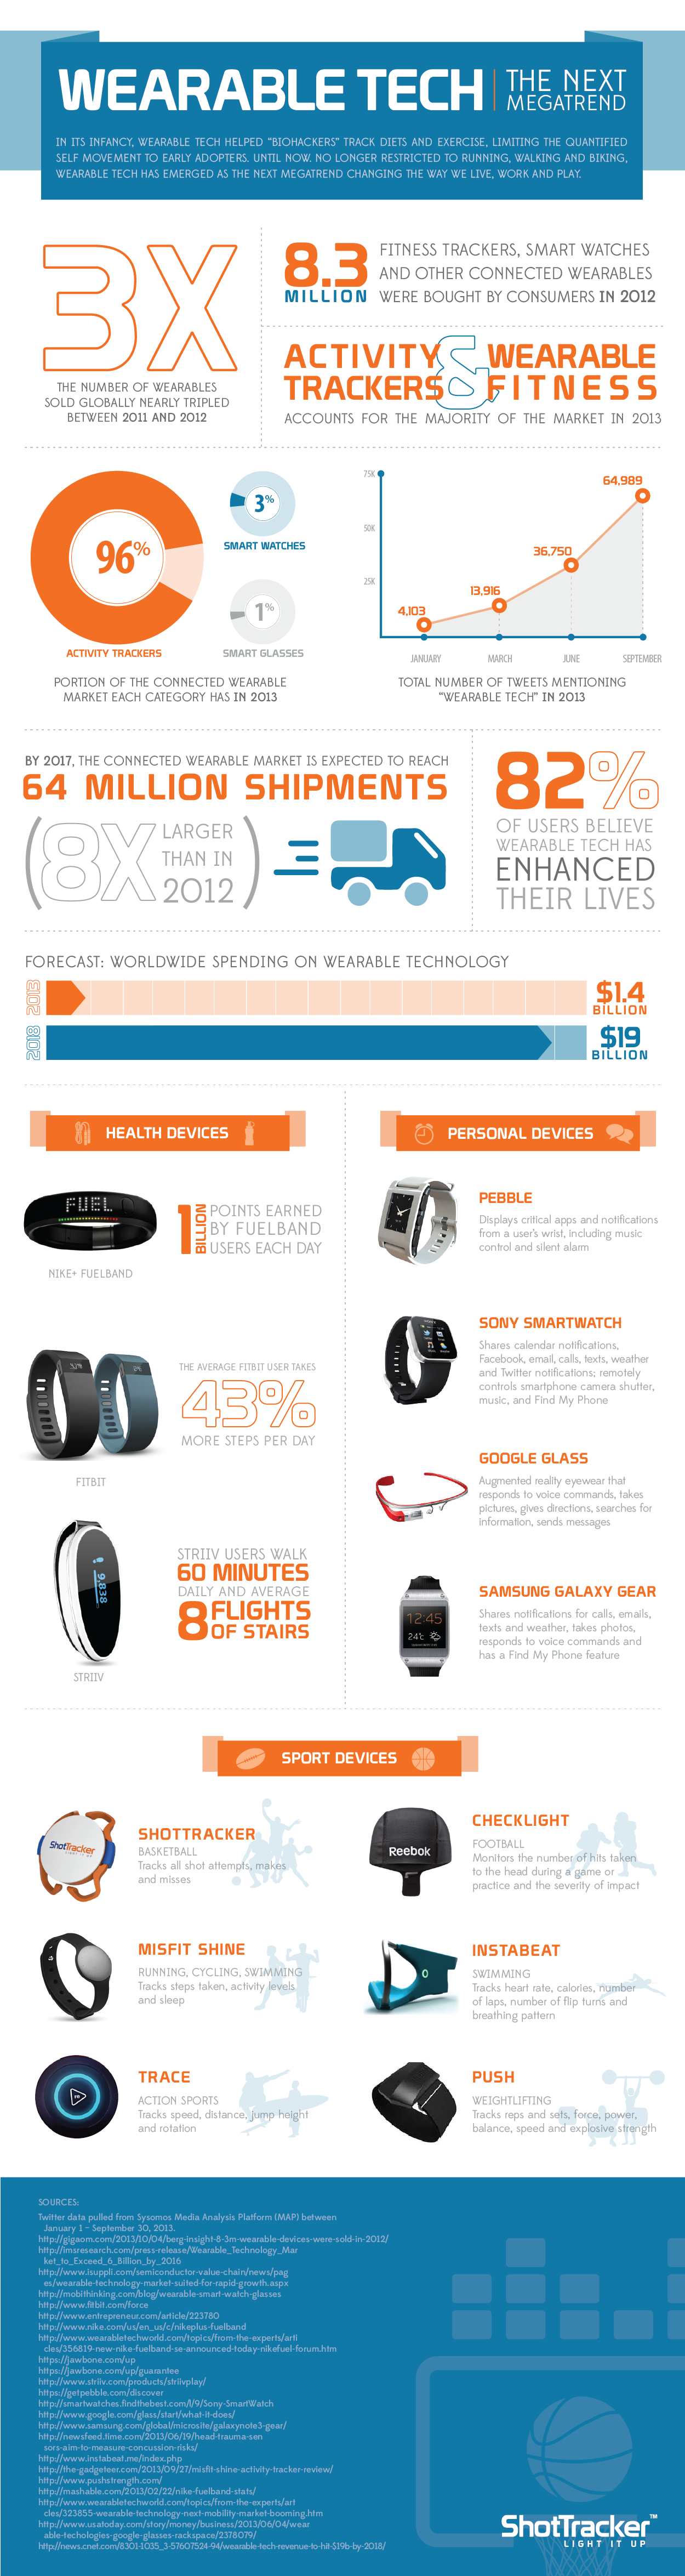 Wearable Medical Technology This week in li...